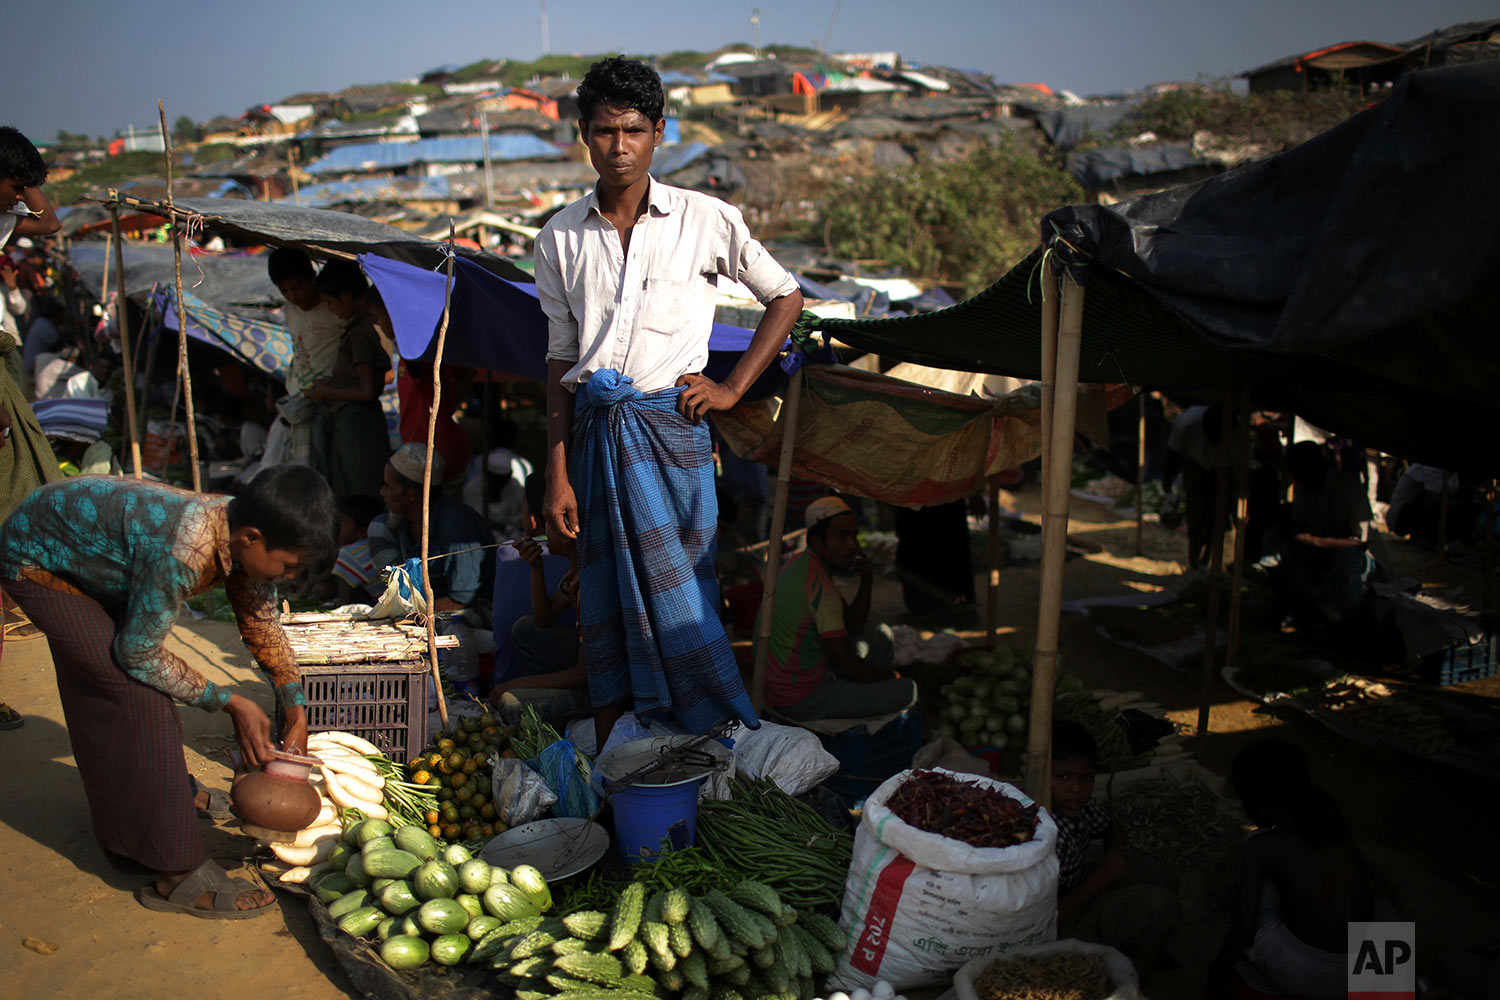 "A Rohingya Muslim man sells vegetables at a market on the outskirts of Kutupalong refugee camp, Bangladesh, Tuesday, Nov. 21, 2017. Since late August, more than 620,000 Rohingya have fled Myanmar's Rakhine state into neighboring Bangladesh, seeking safety from what the military described as ""clearance operations."" The United Nations and others have said the military's actions appeared to be a campaign of ""ethnic cleansing,"" using acts of violence and intimidation and burning down homes to force the Rohingya to leave their communities. (AP Photo/Wong Maye-E)"